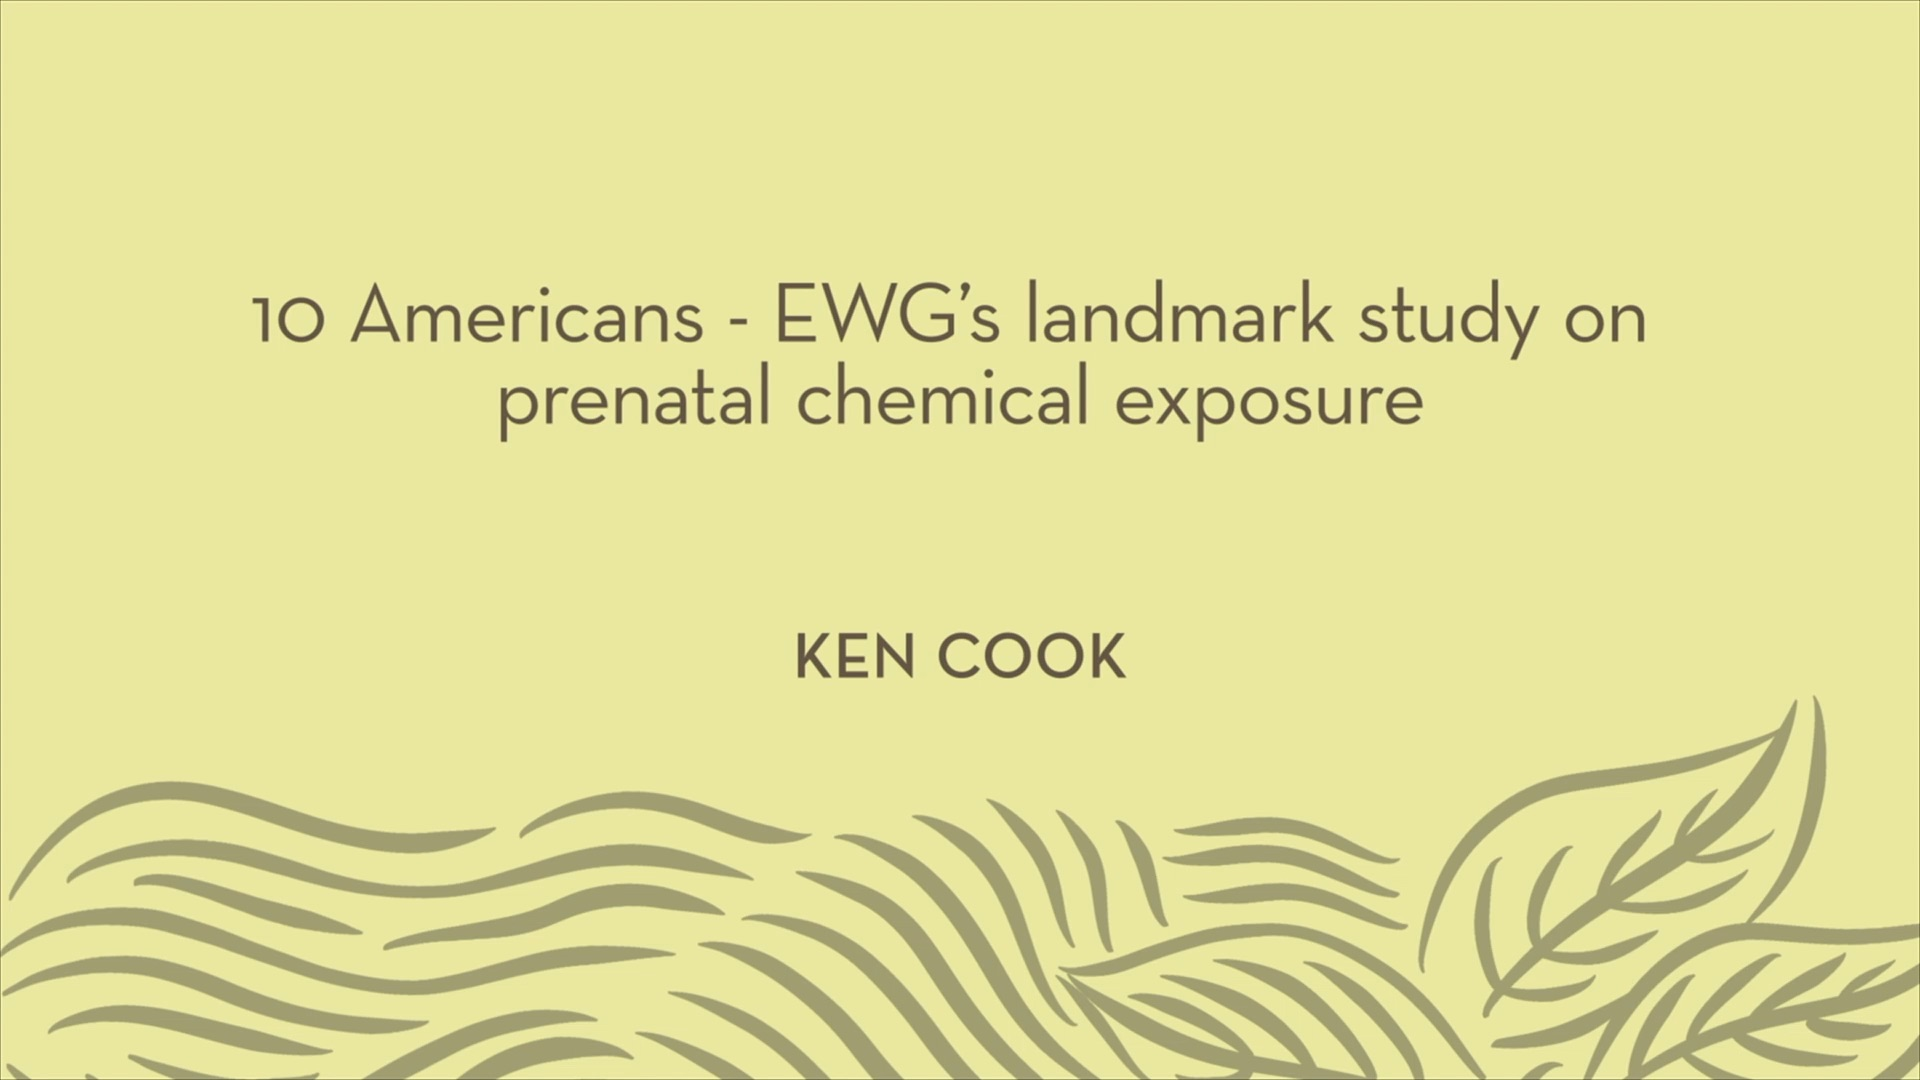 Ken Cook | 10 American - EWG's landmark study on prenatal chemical exposure